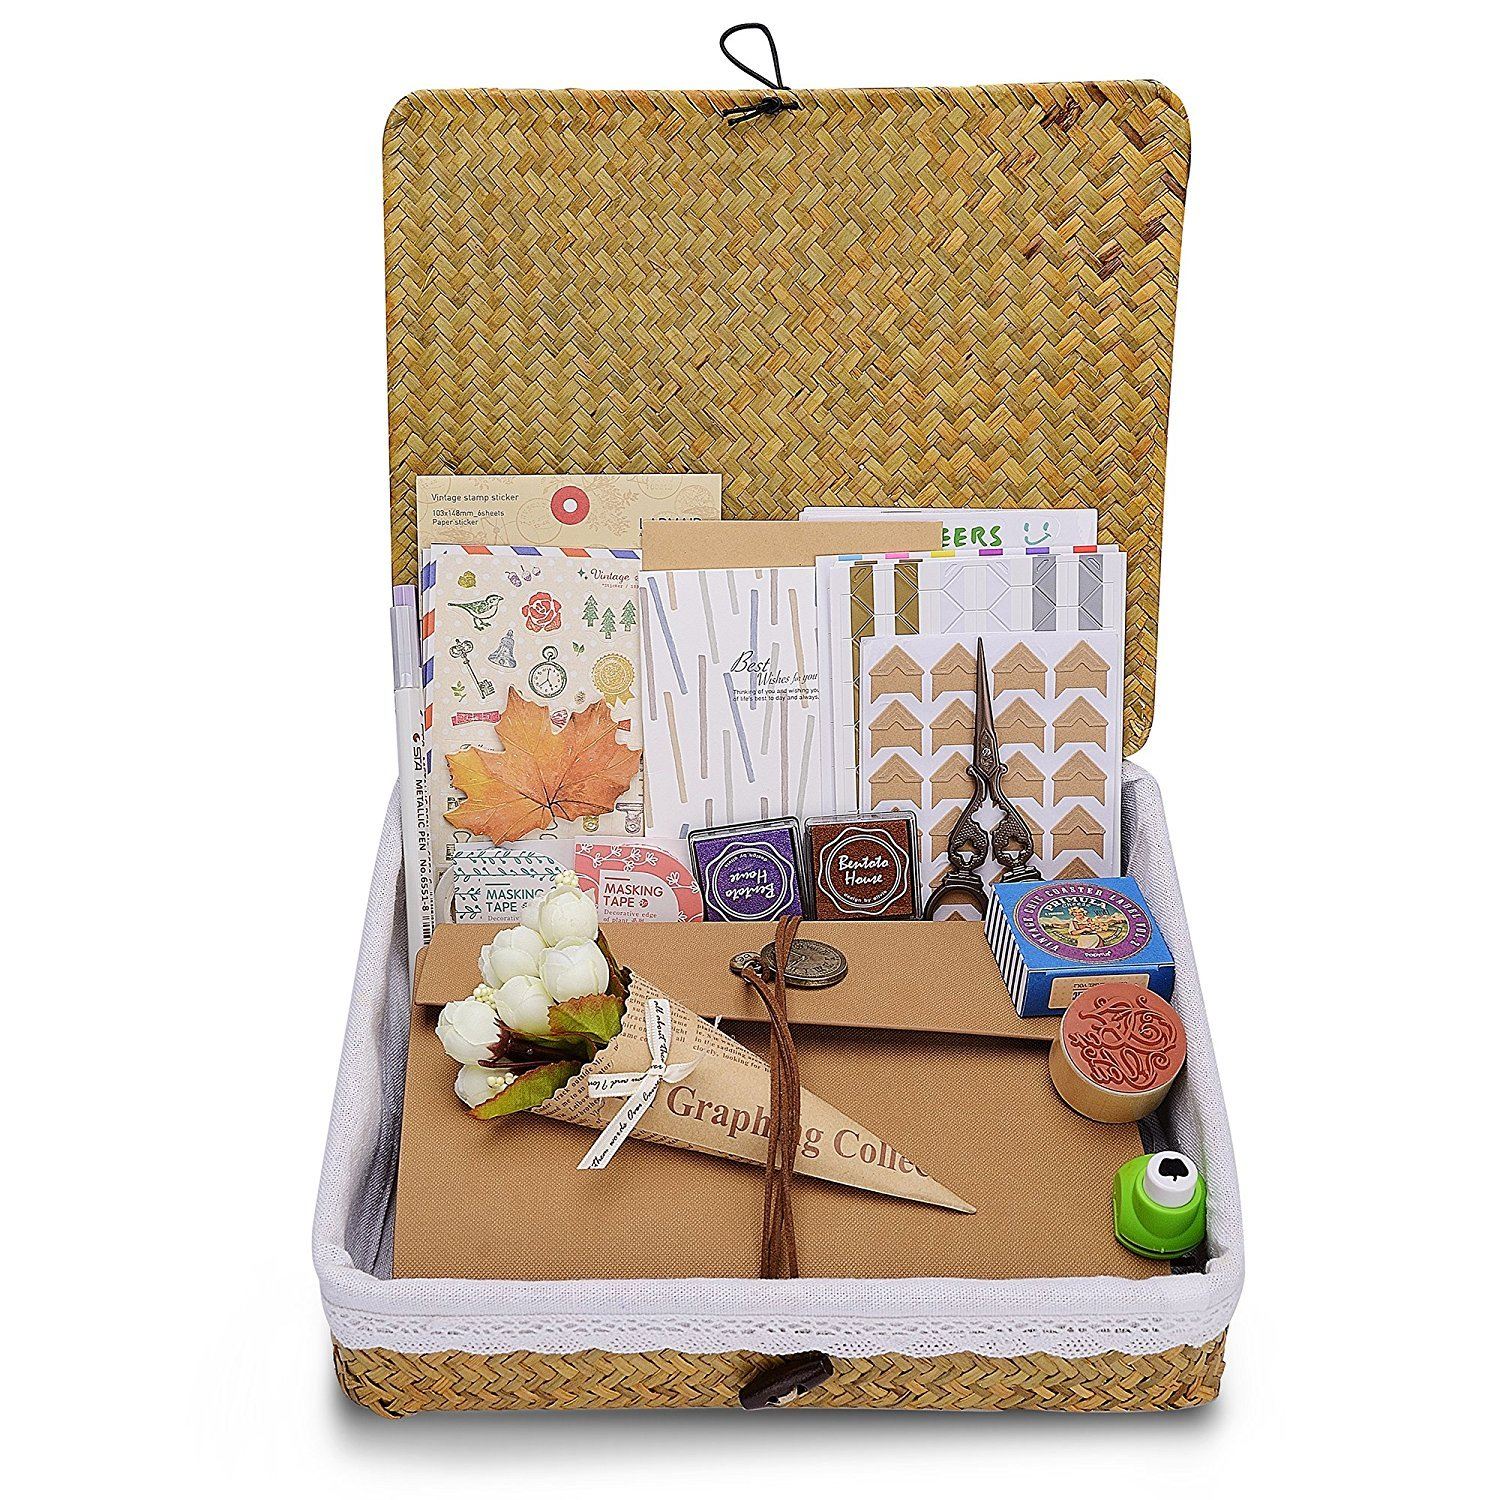 Scrapbook with 100% Handcrafted Rattan Photo Album Storage Box, DIY Anniversary, Wedding Photo Album, with DIY Accessories Kit